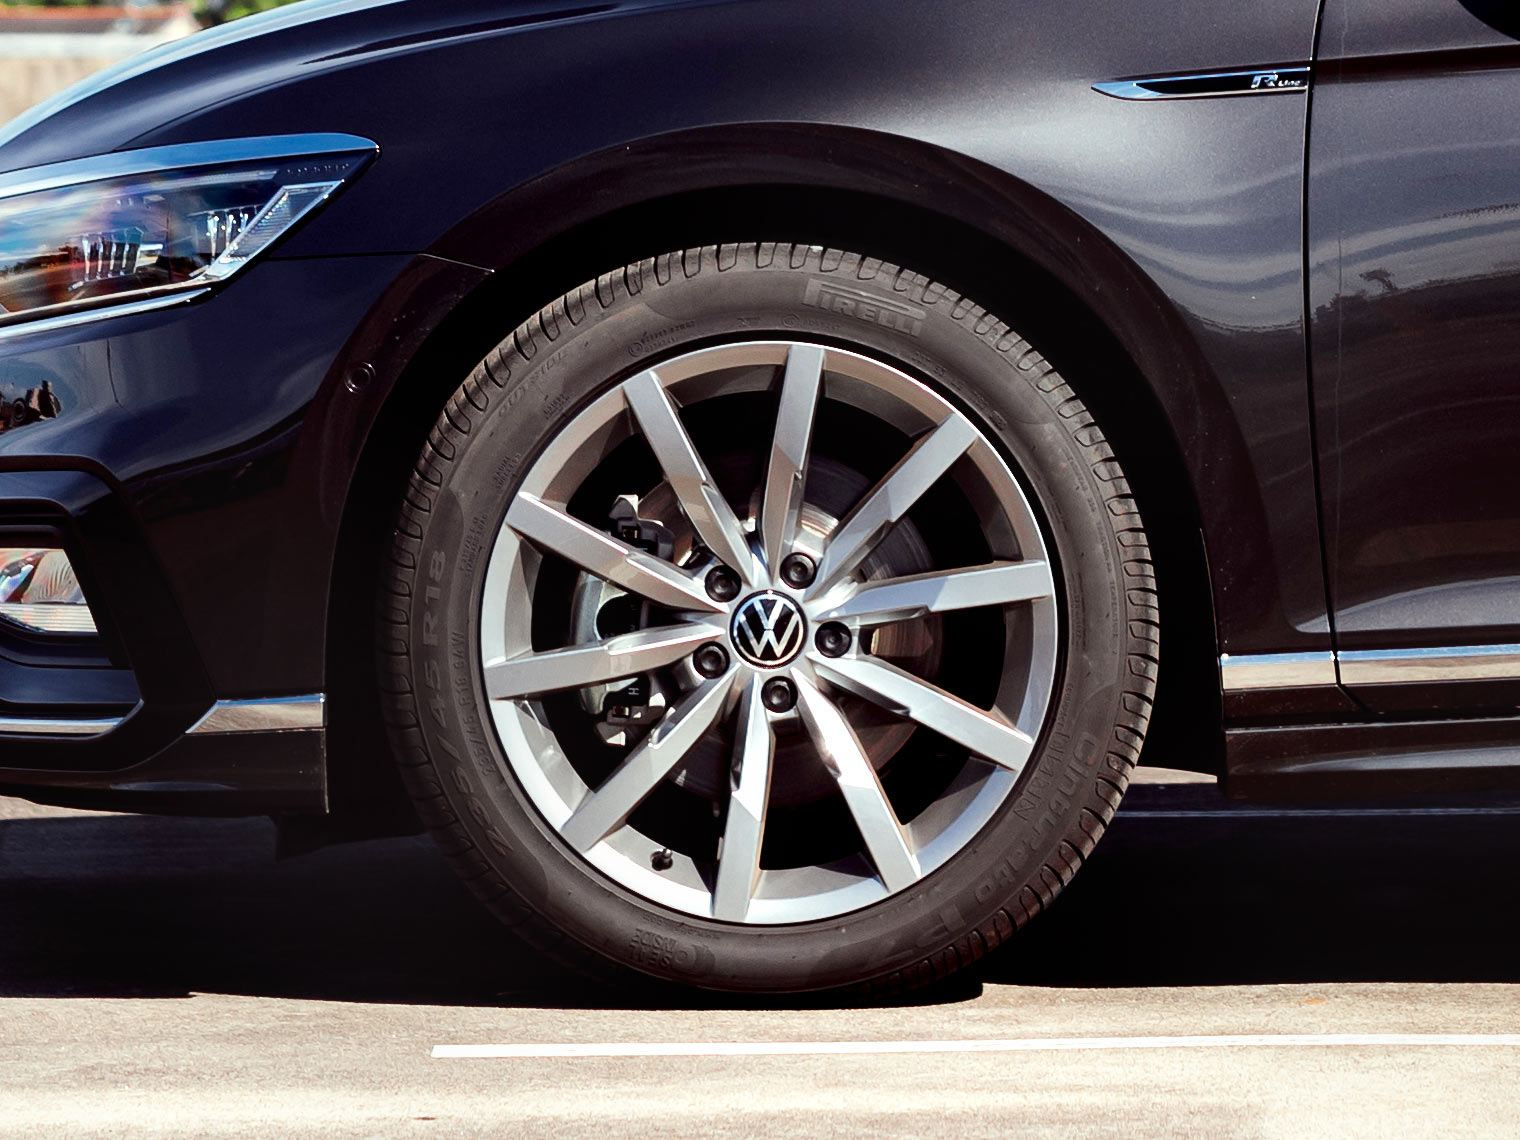 The finishing touch Alloy Wheels Image